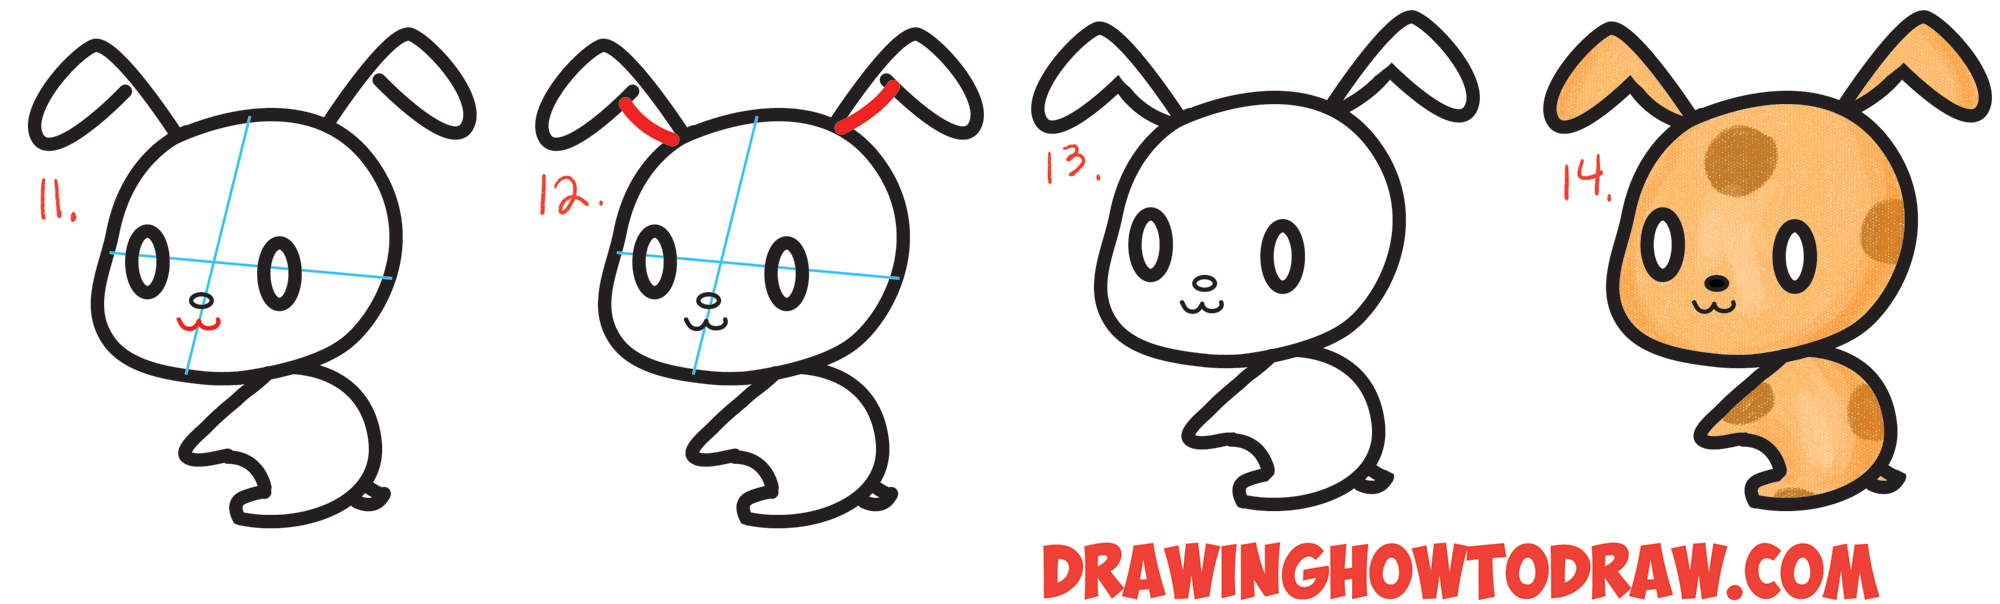 2000x604 How To Draw Cute Chibi Kawaii Characters With Number 3 Shapes